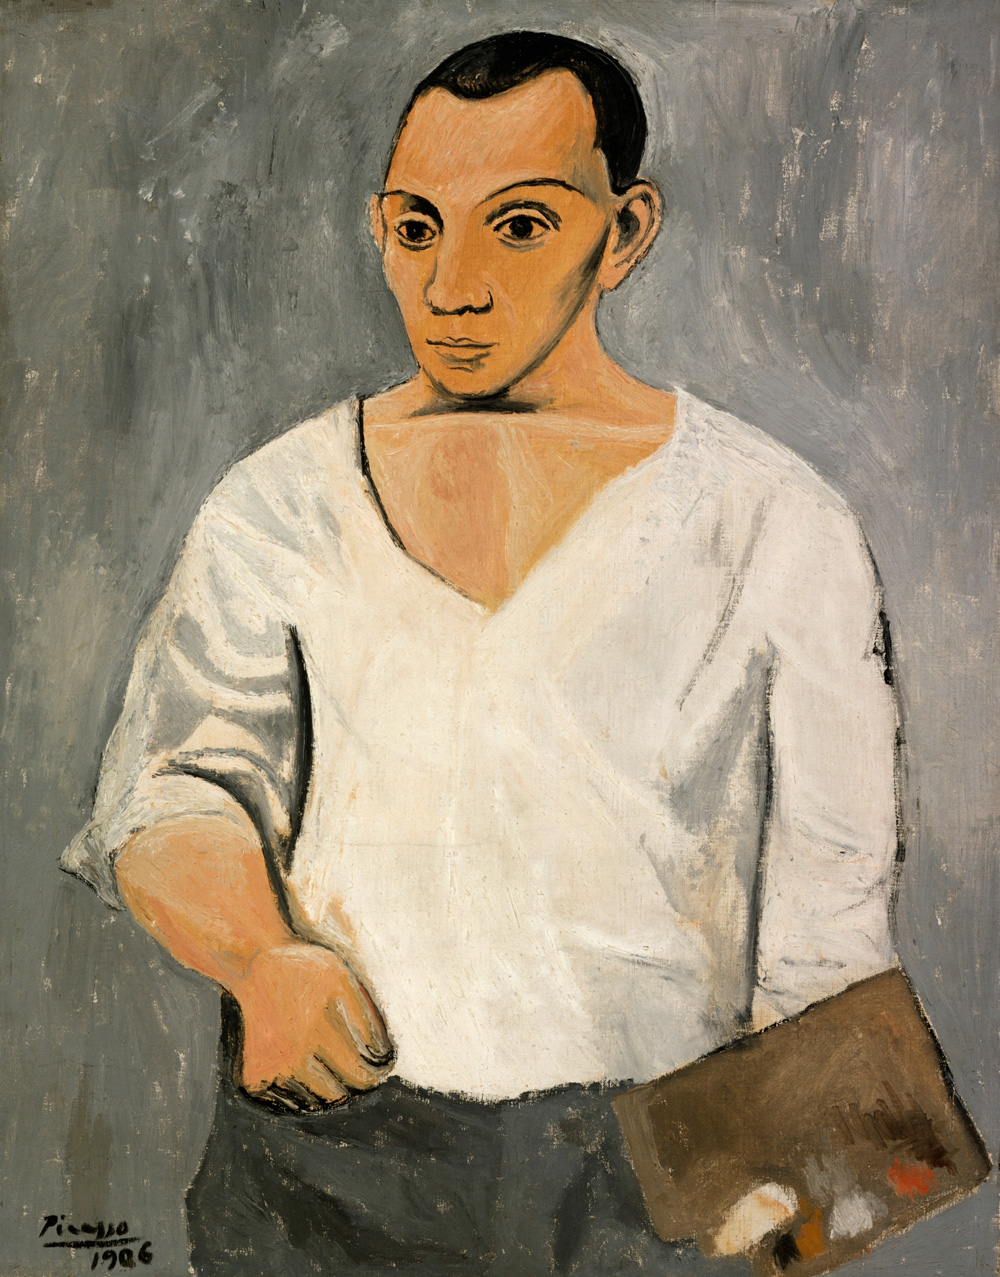 Picasso_SelfPortrait